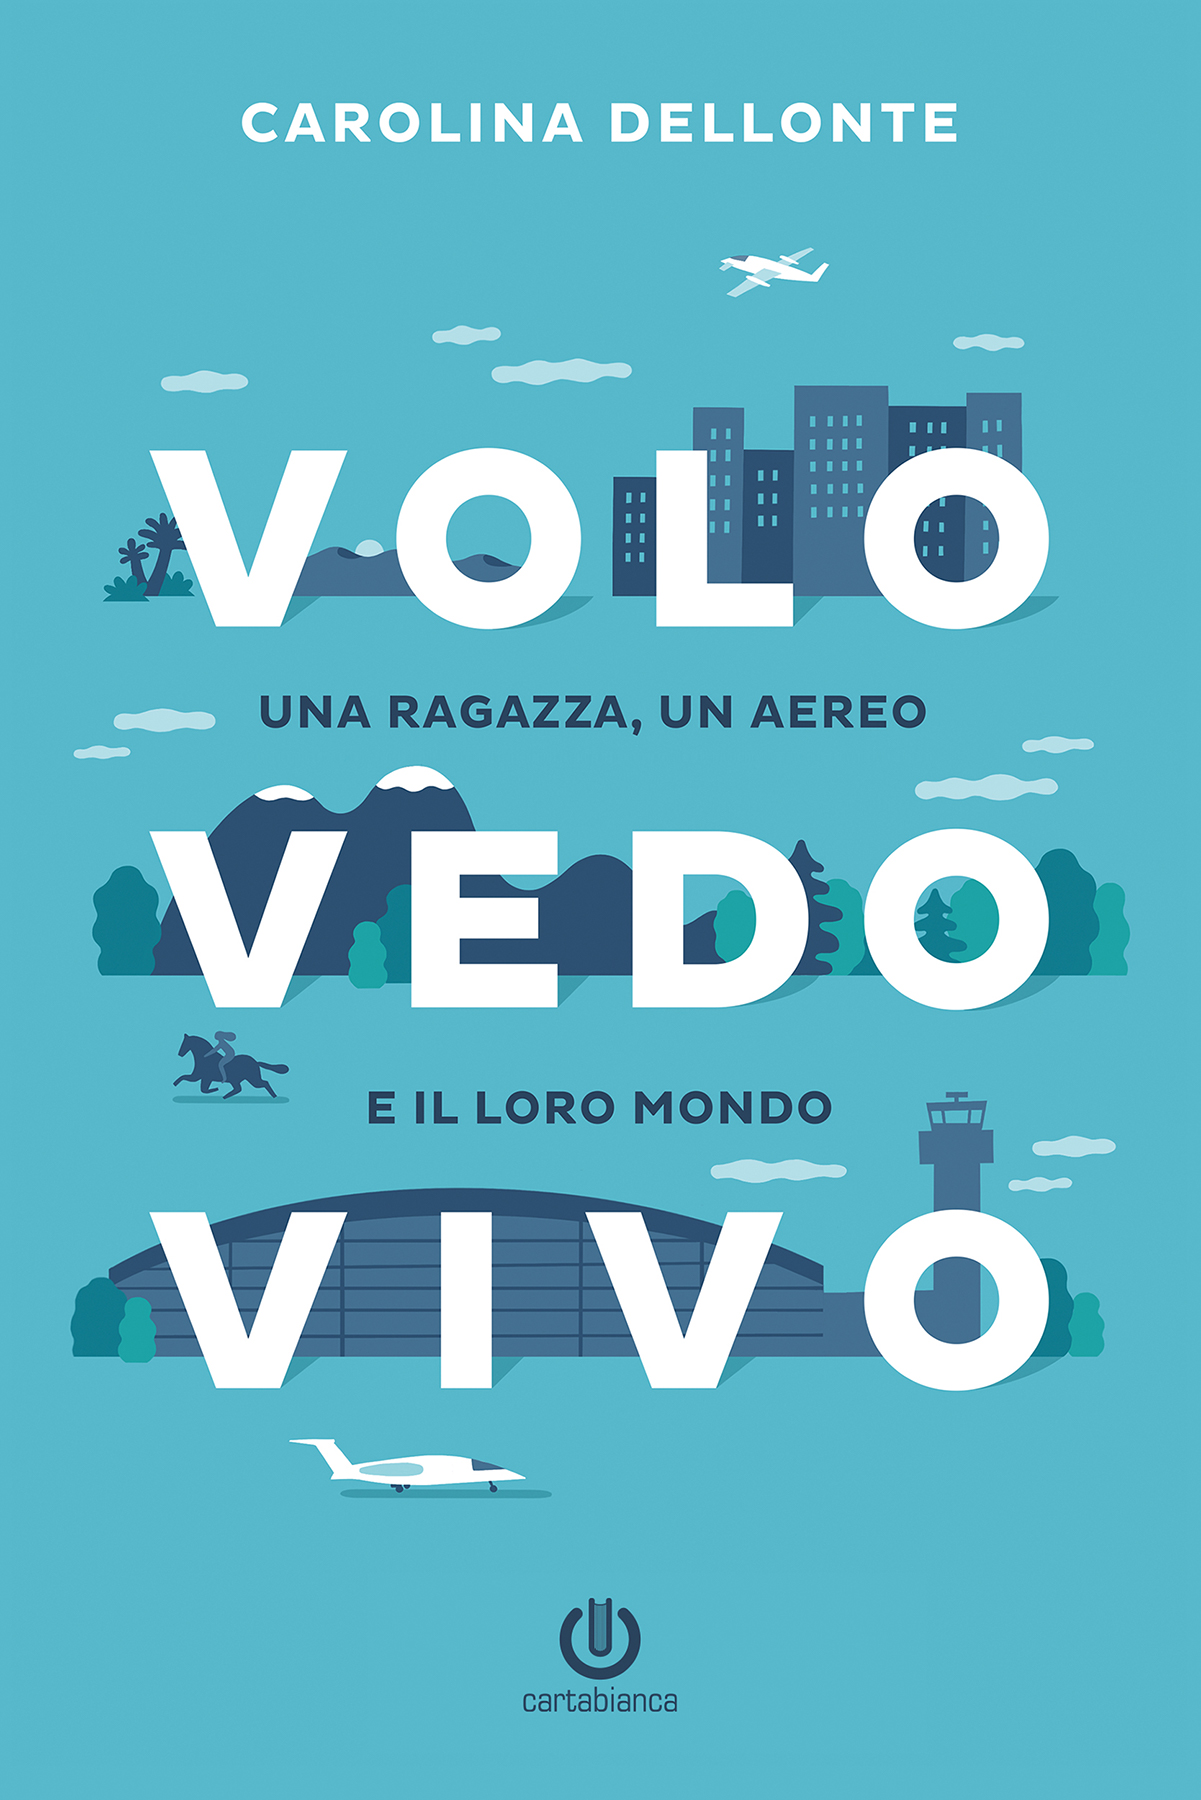 Grafica e illustrazione copertina per Volo Vedo Vivo di Carolina Dellonte edito da Cartabianca Publishing © Silvia Bettini